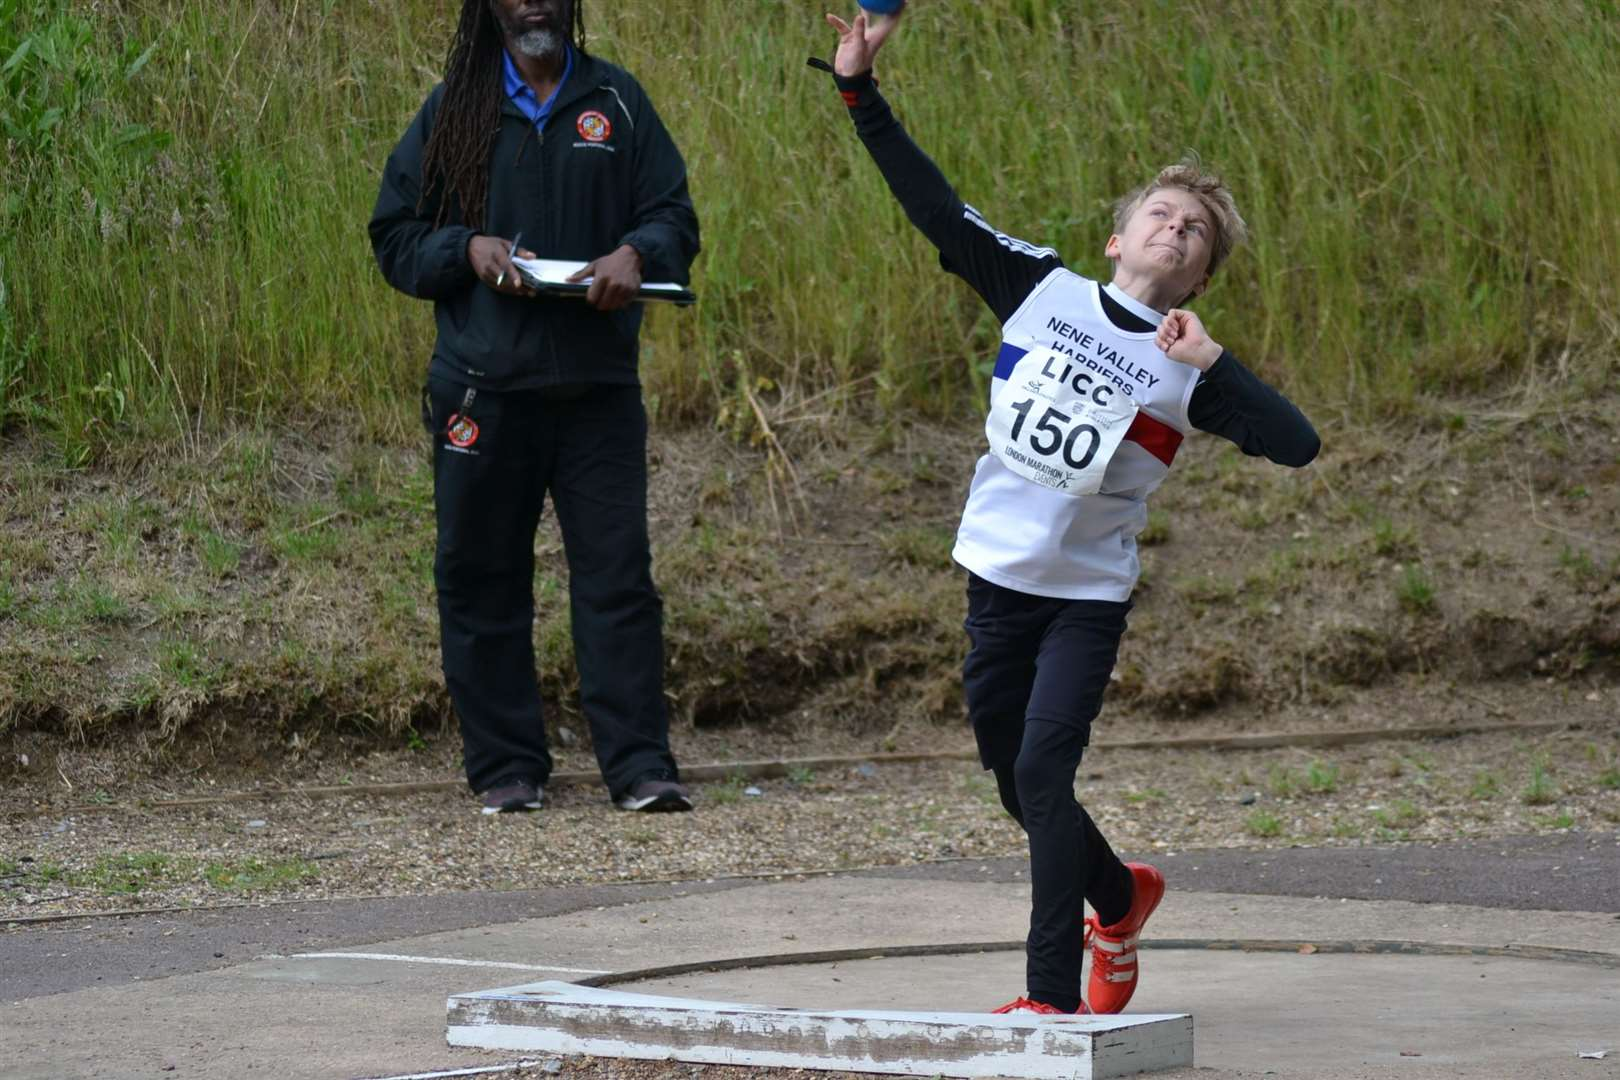 Lawson Capes became the only ten-year-old in the country to throw the shot put over ten metres at a London inter-club challenge meeting in June.